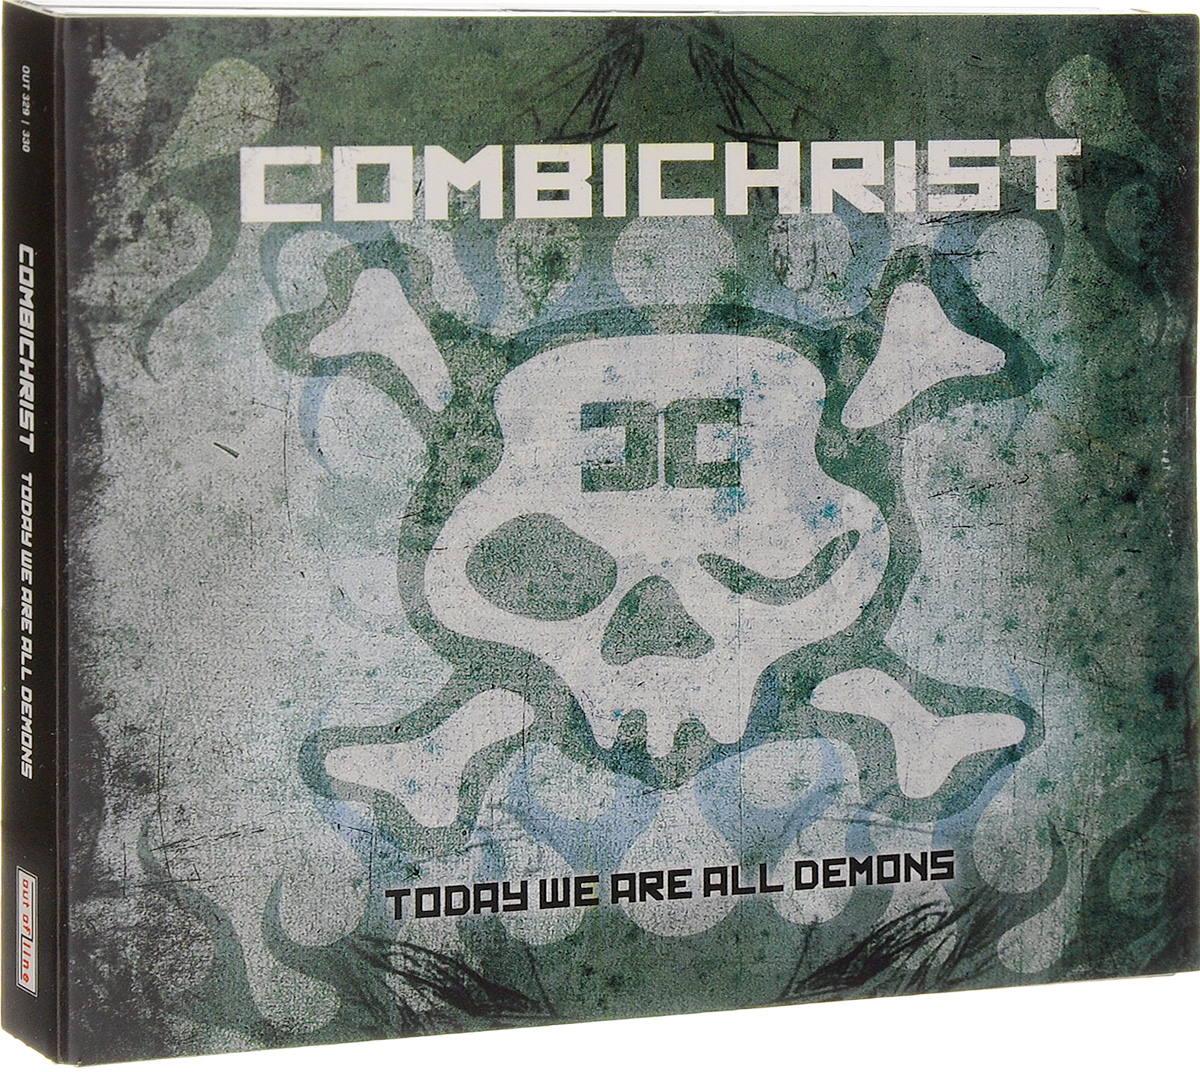 Combichrist Combichrist. Today We Are All Demons. Deluxe Edition (2 CD) all wet cd